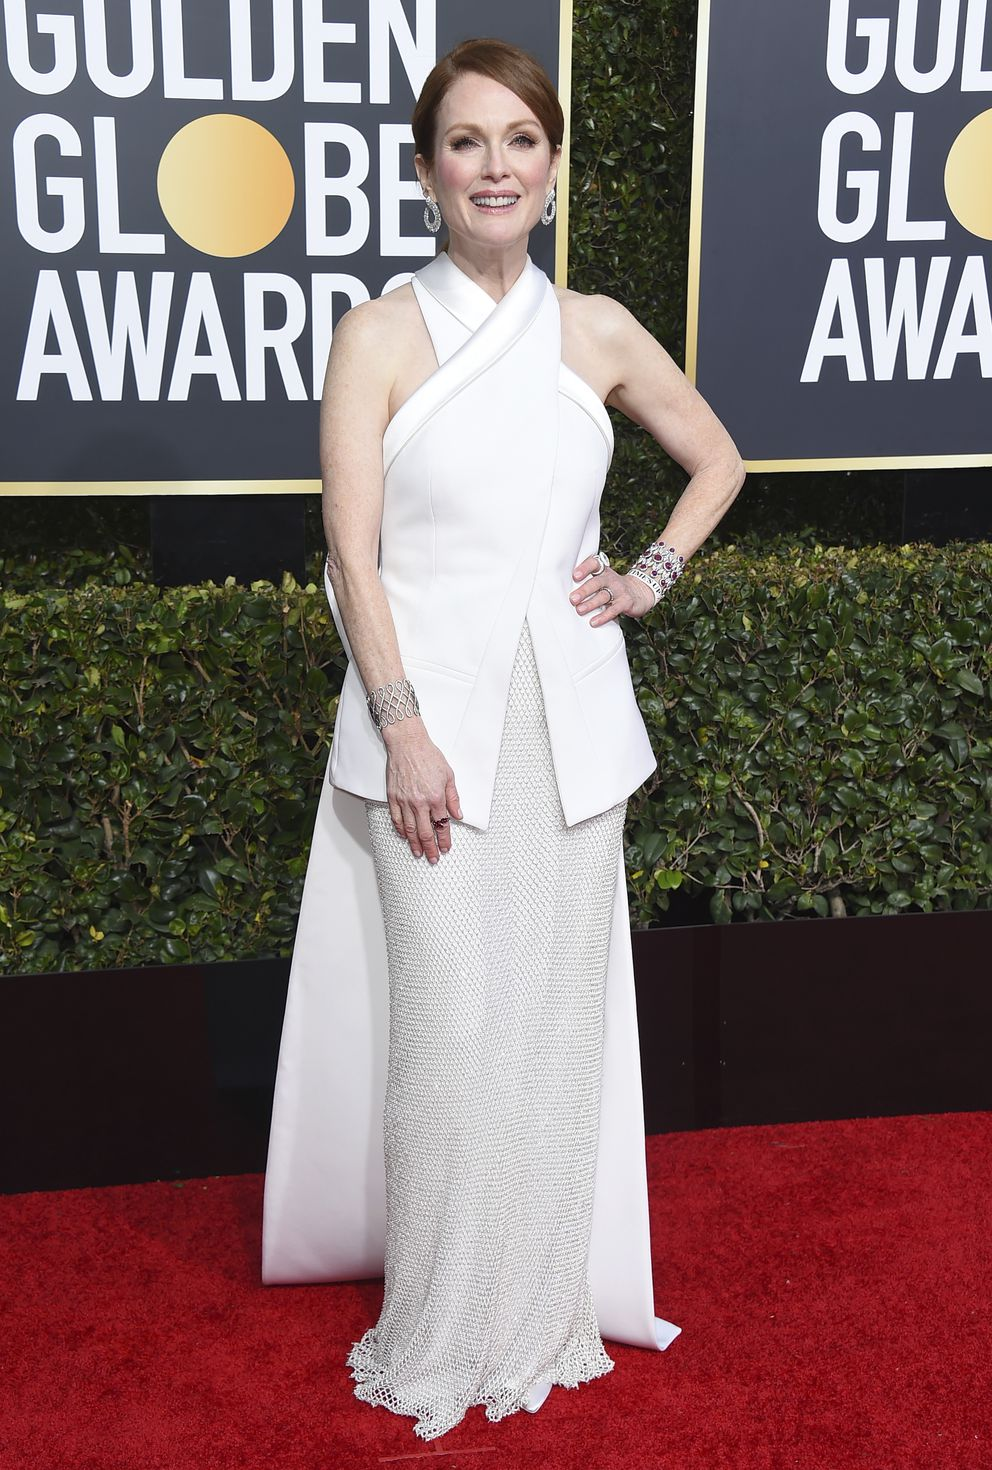 Julianne Moore arrives at the 76th annual Golden Globe Awards at the Beverly Hilton Hotel on Sunday, Jan. 6, 2019, in Beverly Hills, Calif. (Photo by Jordan Strauss/Invision/AP)